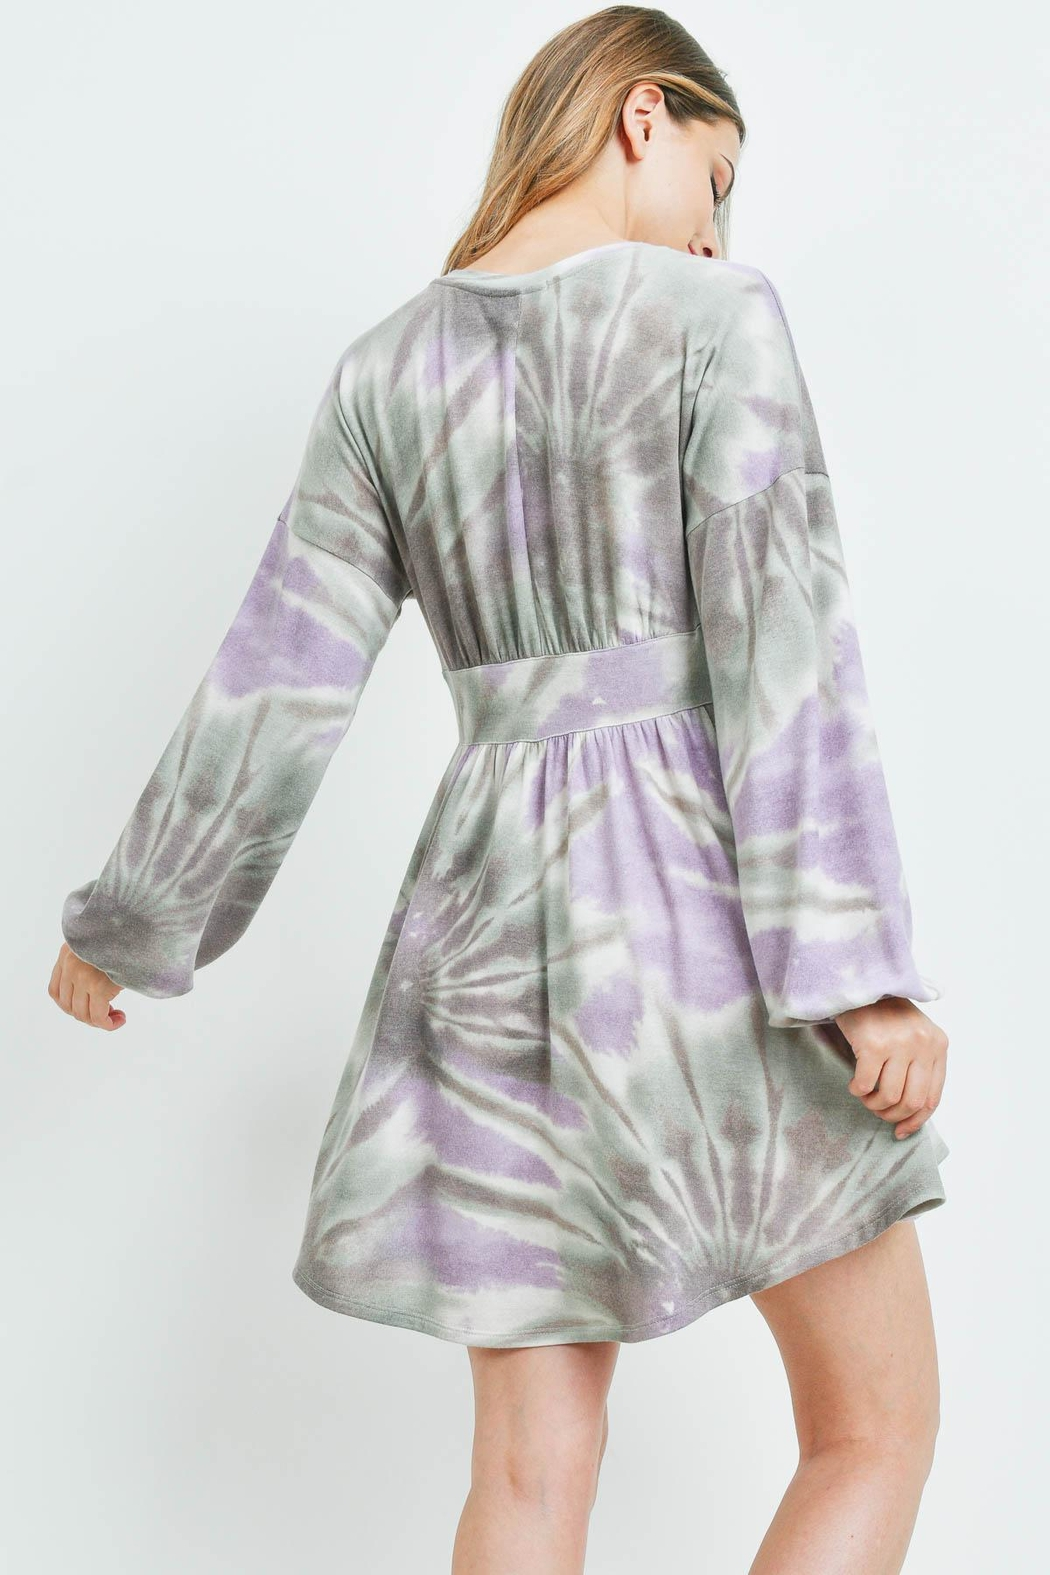 Riah Fashion Taupe-Lilac Tie Dye Dress - Front Full Image